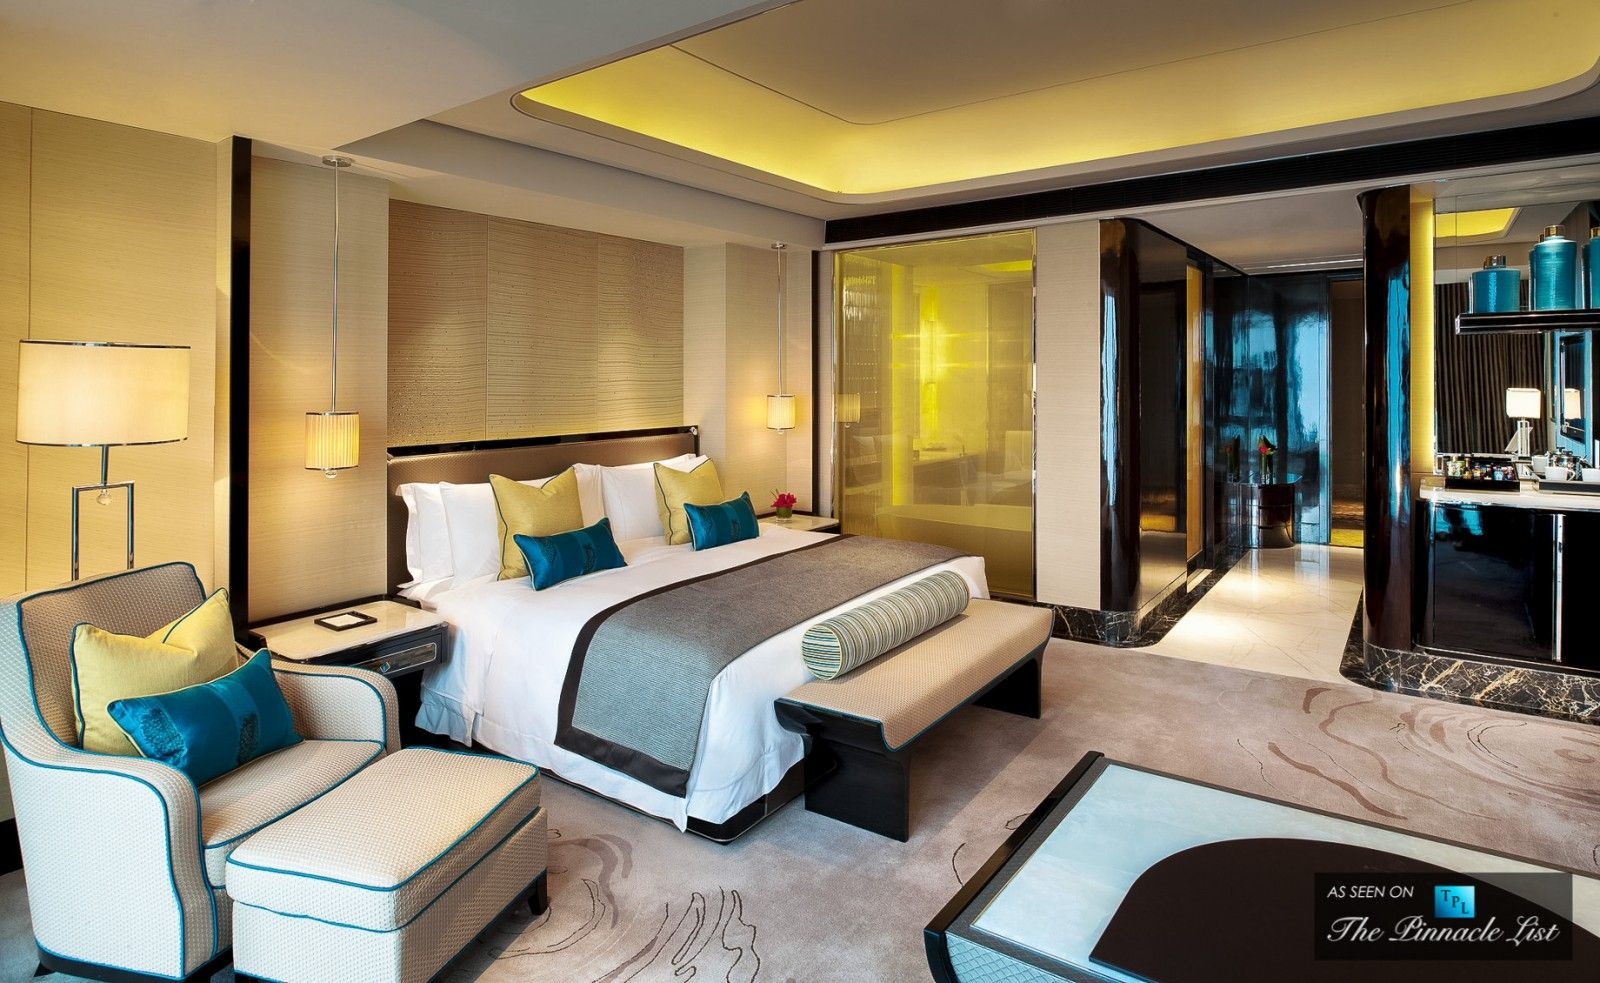 Comfort abounds in this hotel suite st regis luxury for Hotel design color